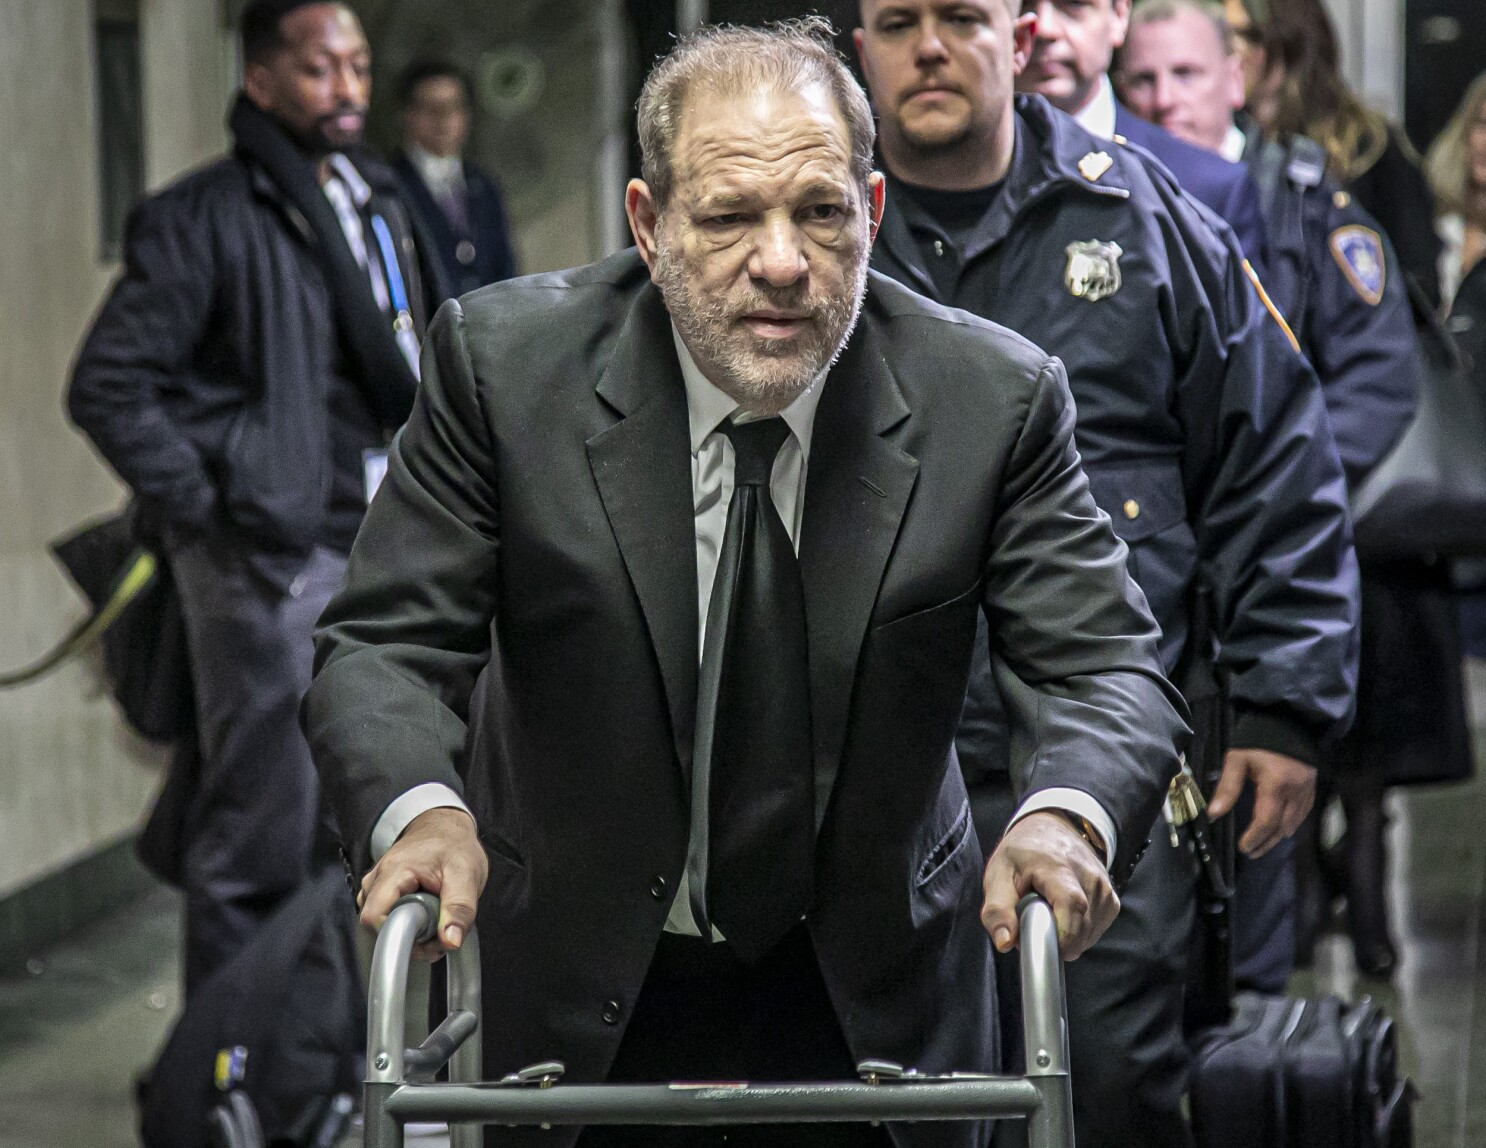 Harvey Weinstein could spend rest of life in prison after rape ...